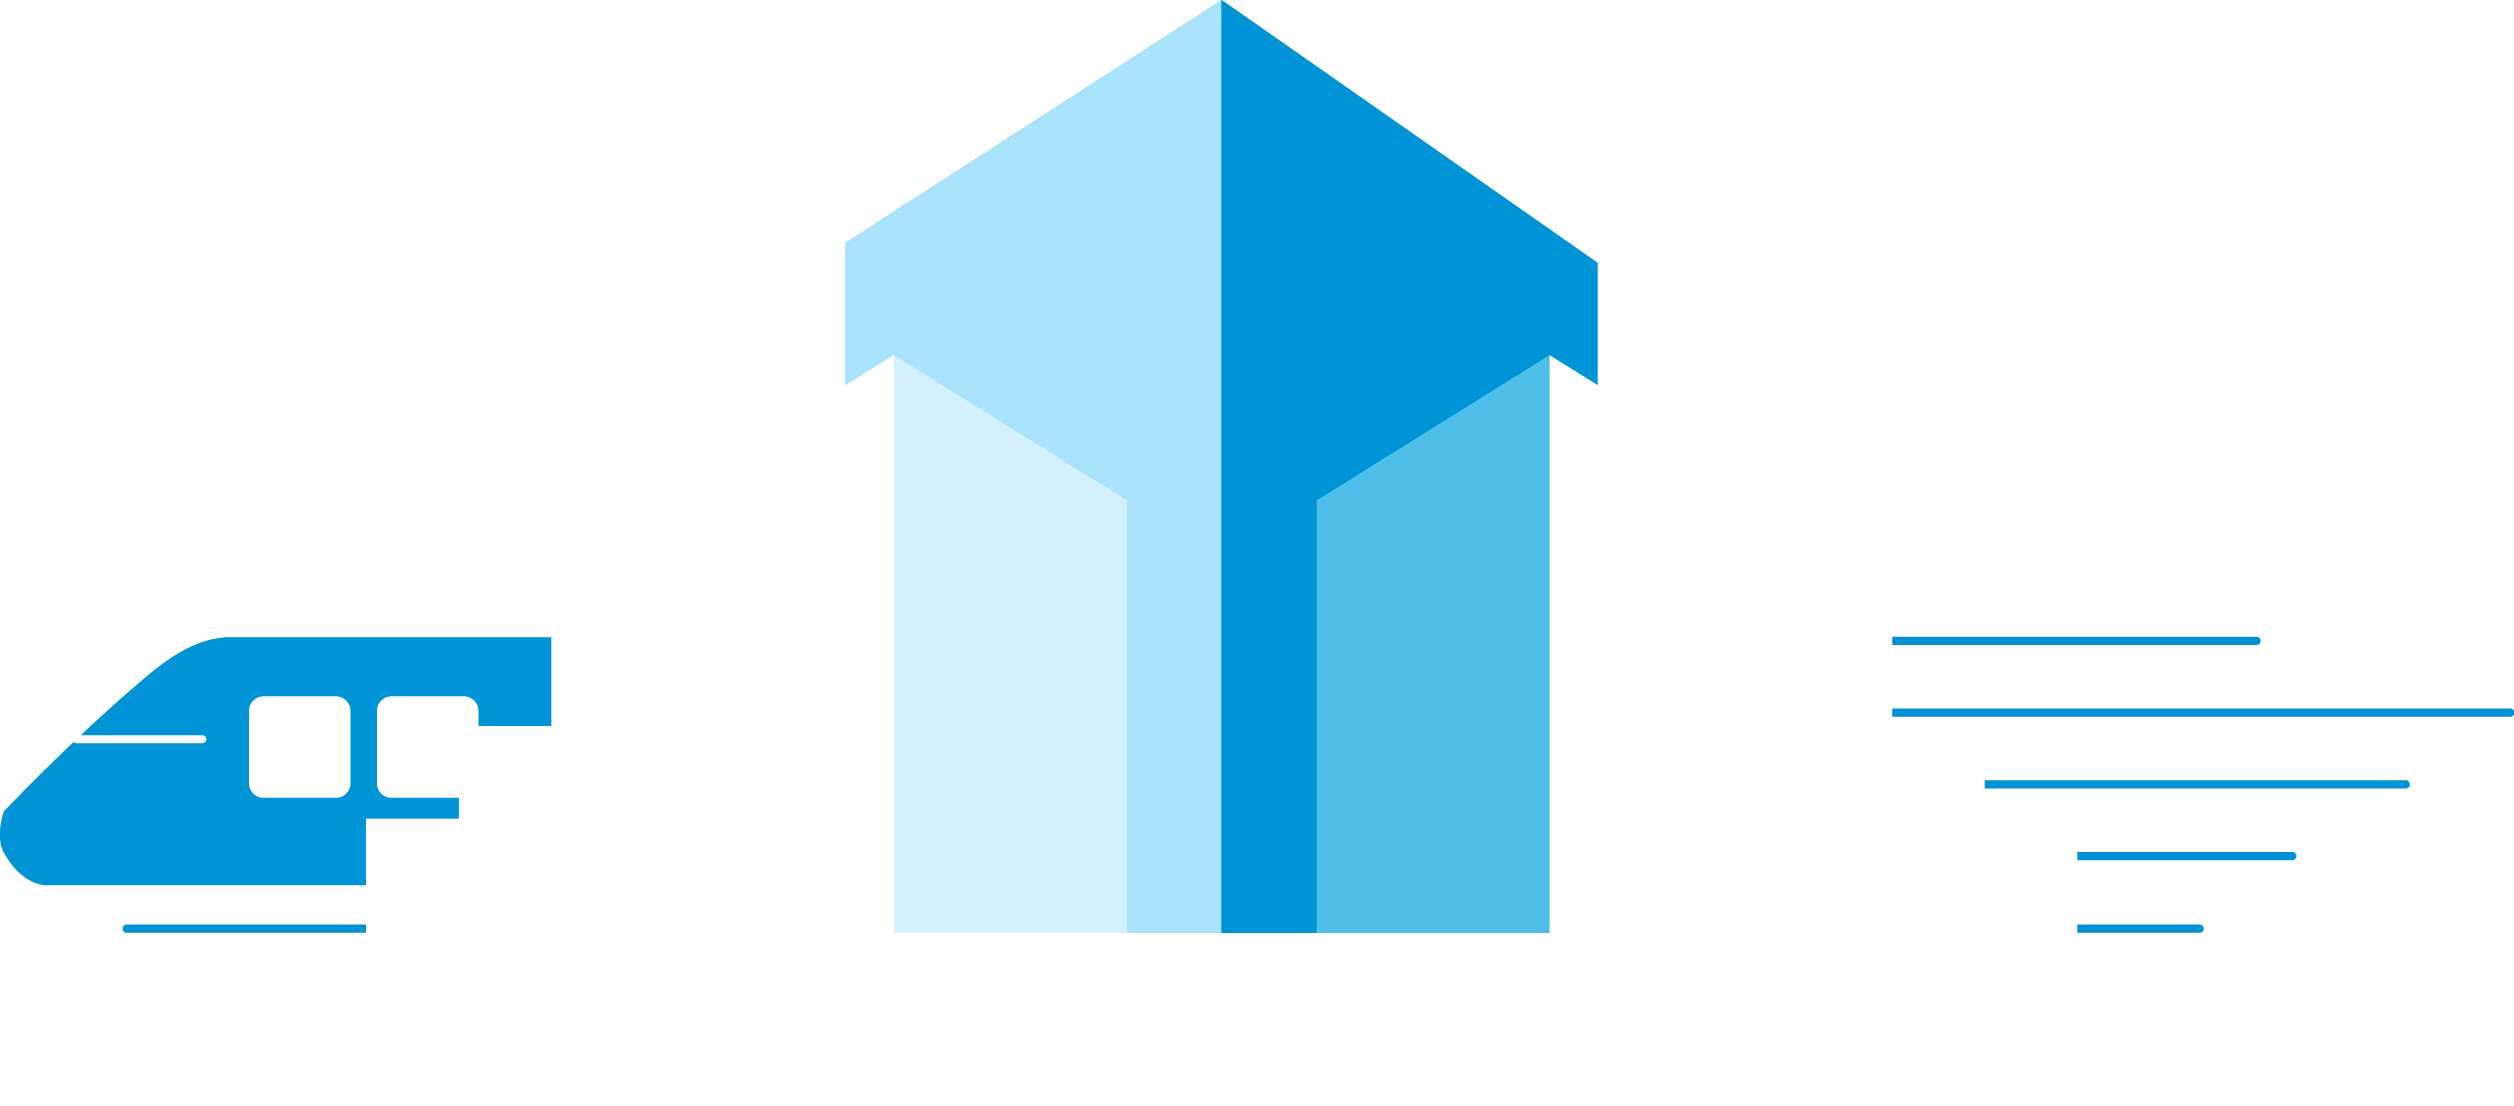 Watline Corporate Centre